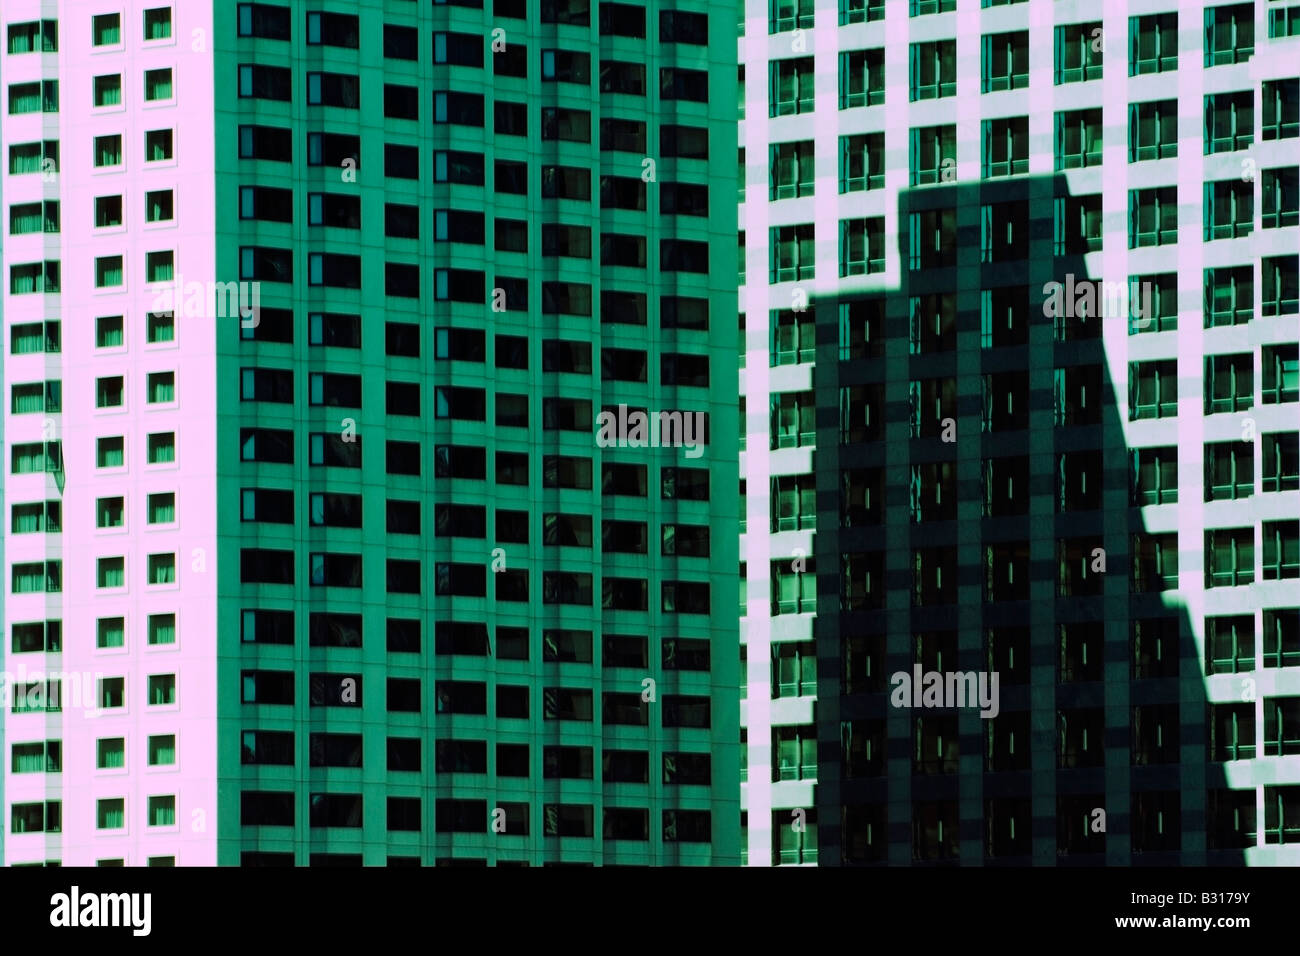 Patterns and shapes formed by Chicago architecture - Stock Image